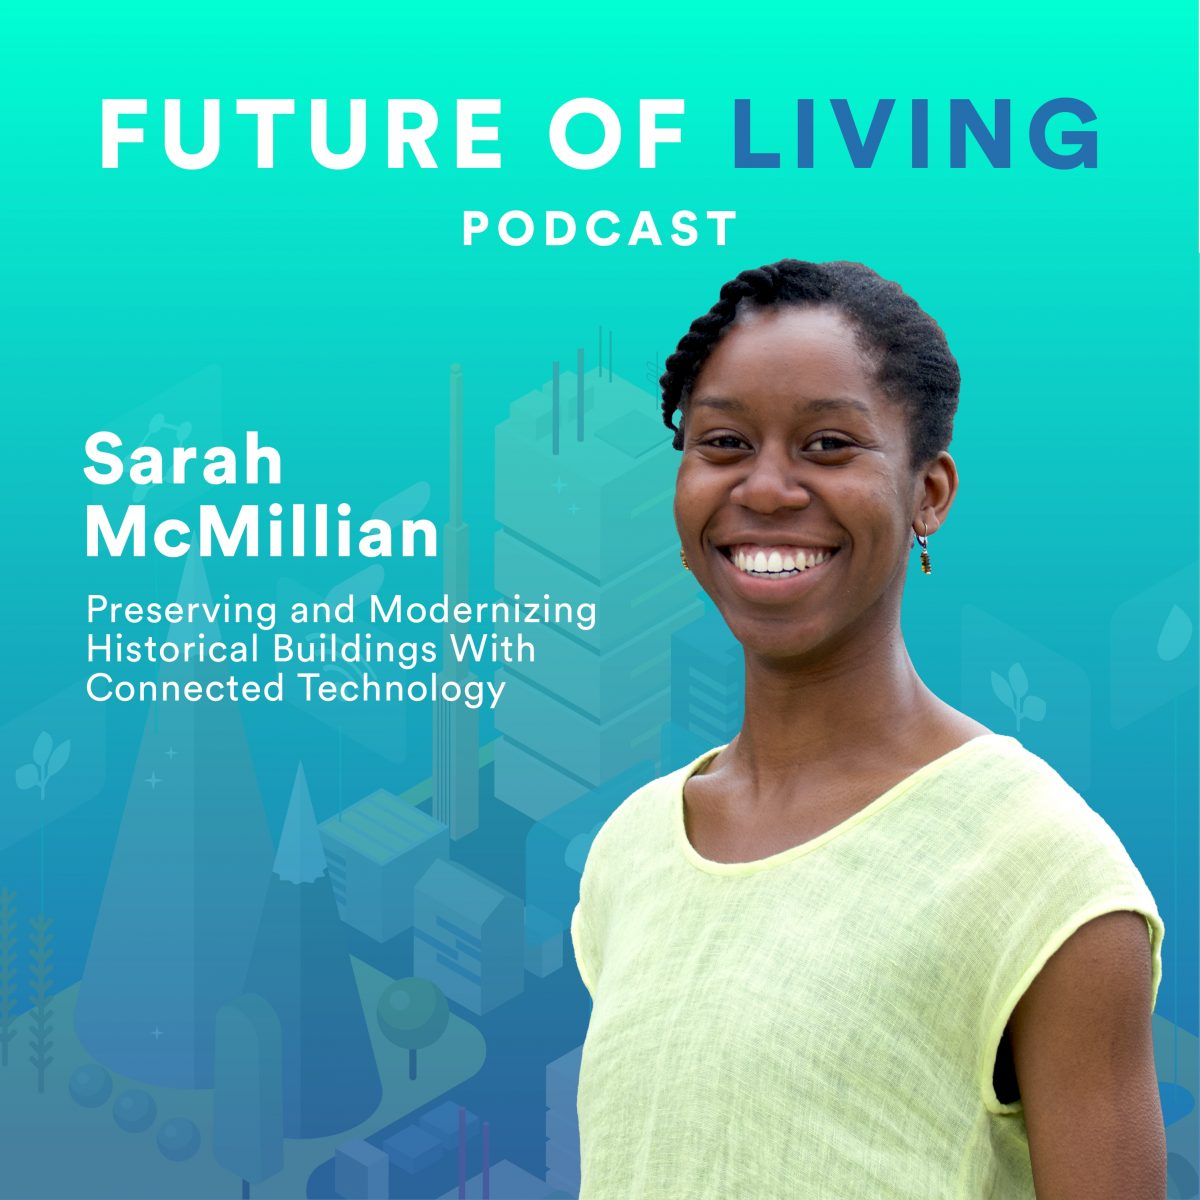 Future of Living Podcast